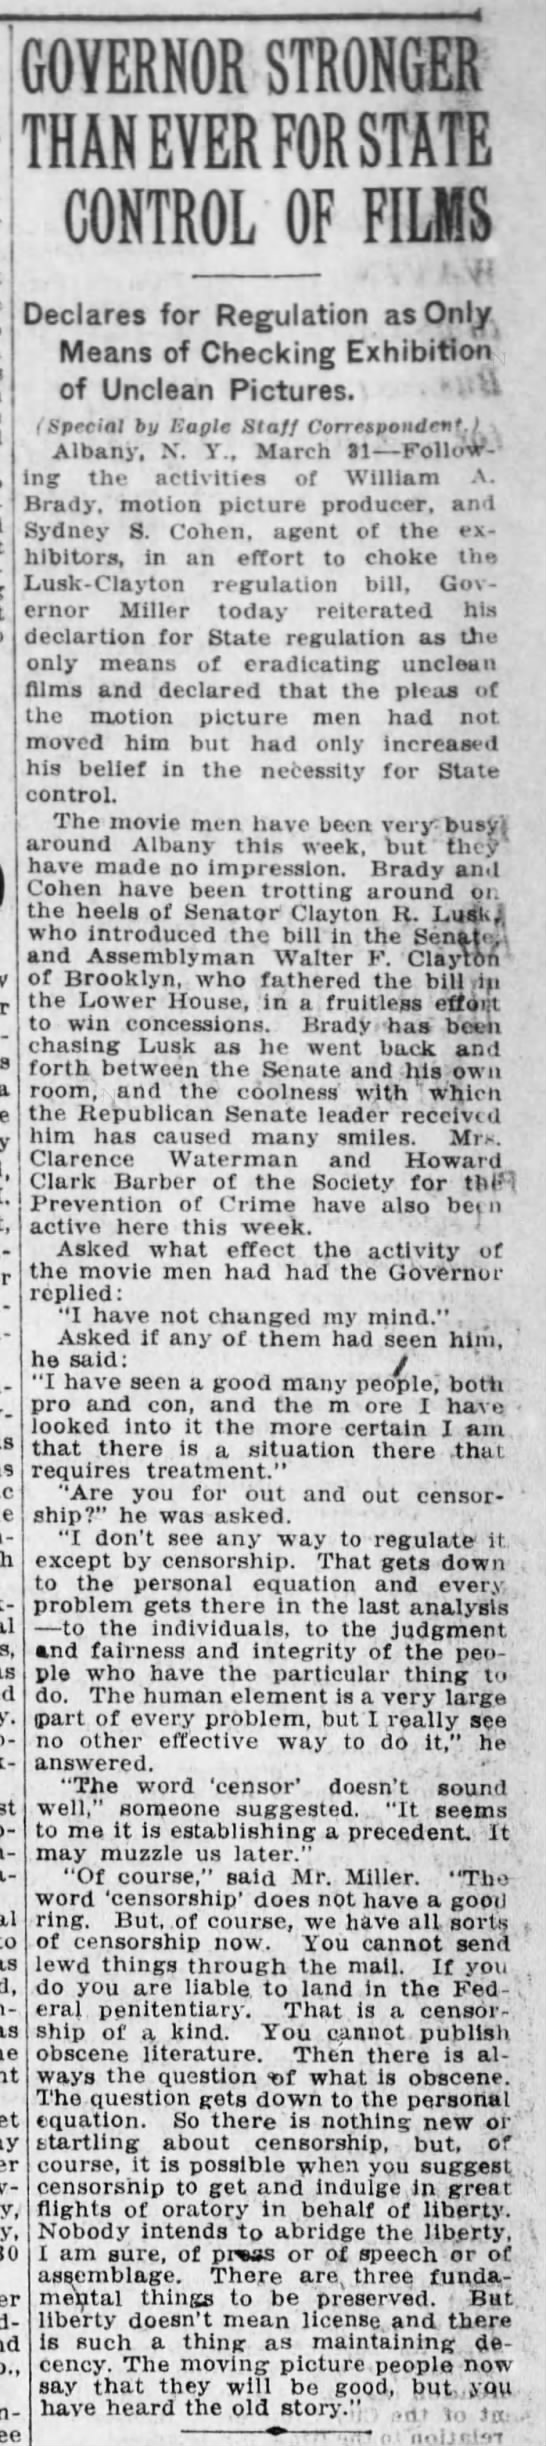 state control of films-3-31-1921-brooklyn-daily eagle -